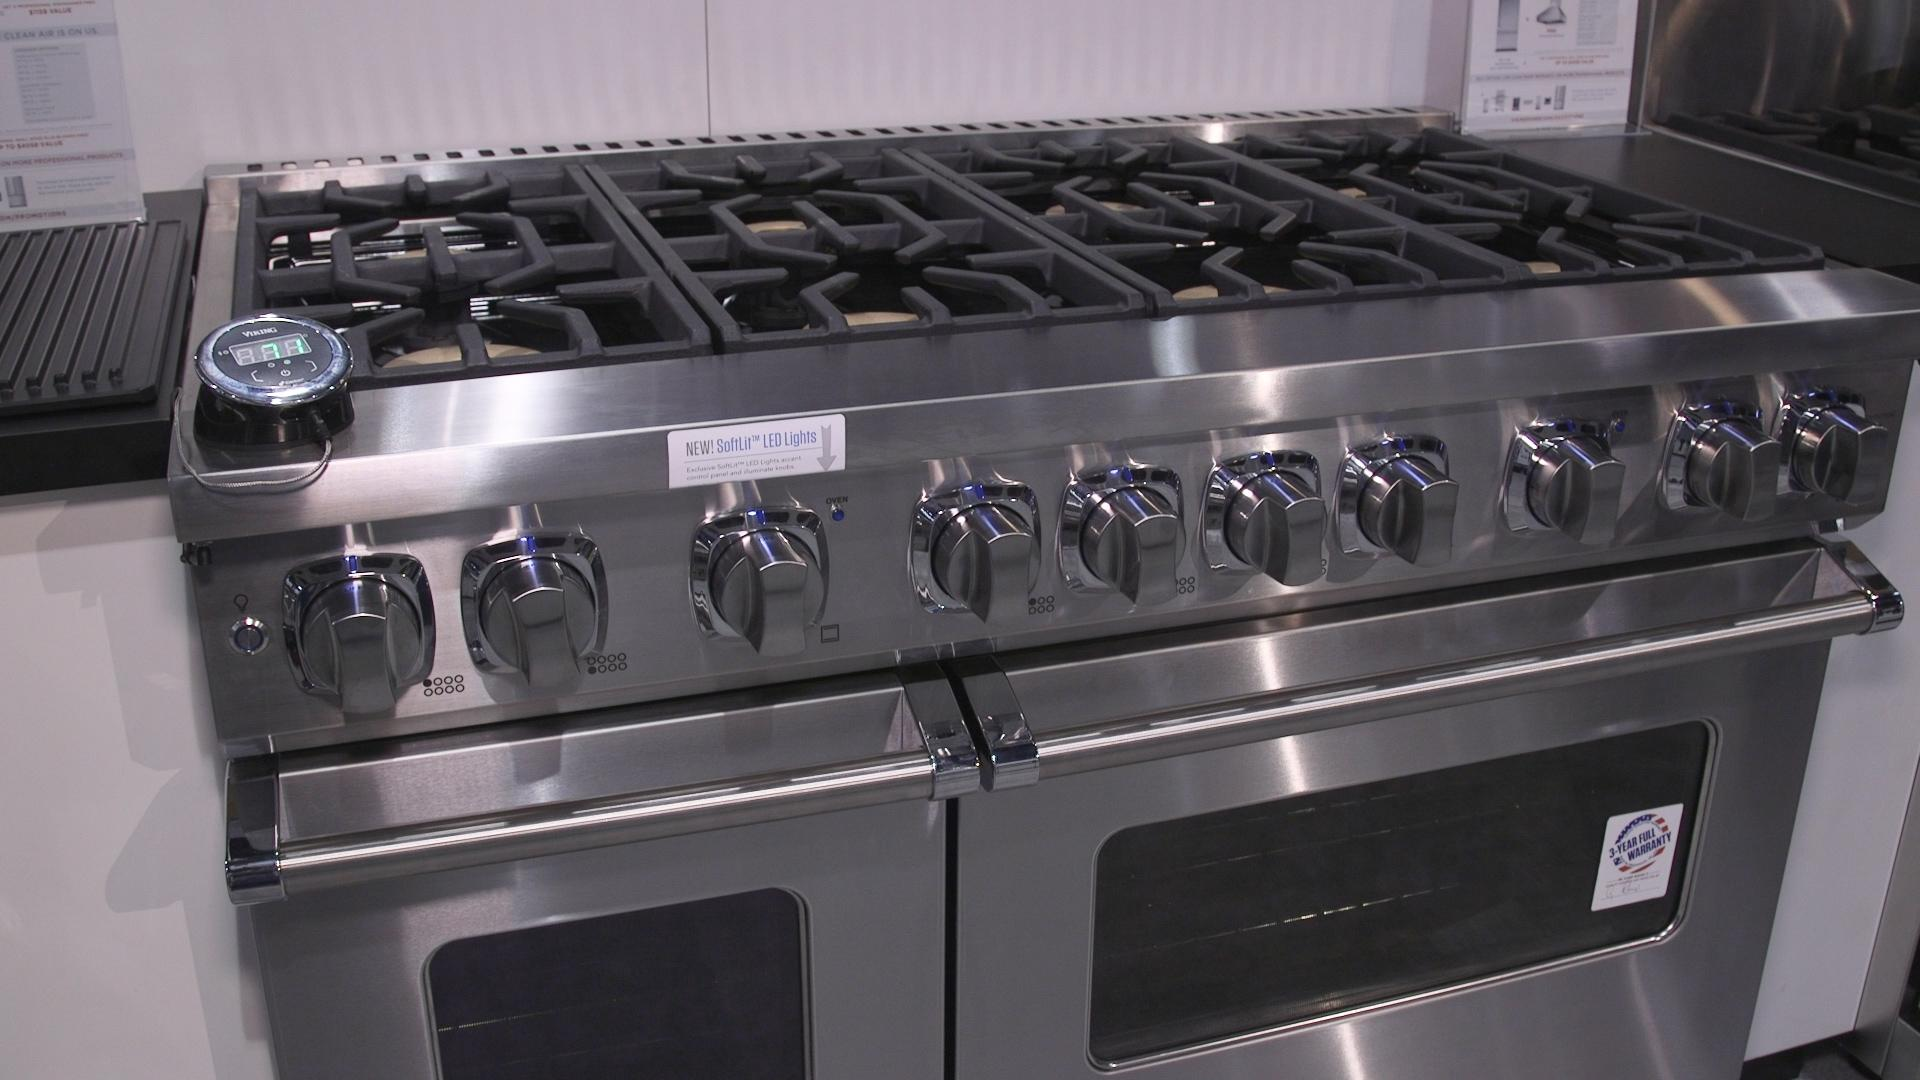 Kitchen Stove what's cooking in kitchen stoves - consumer reports